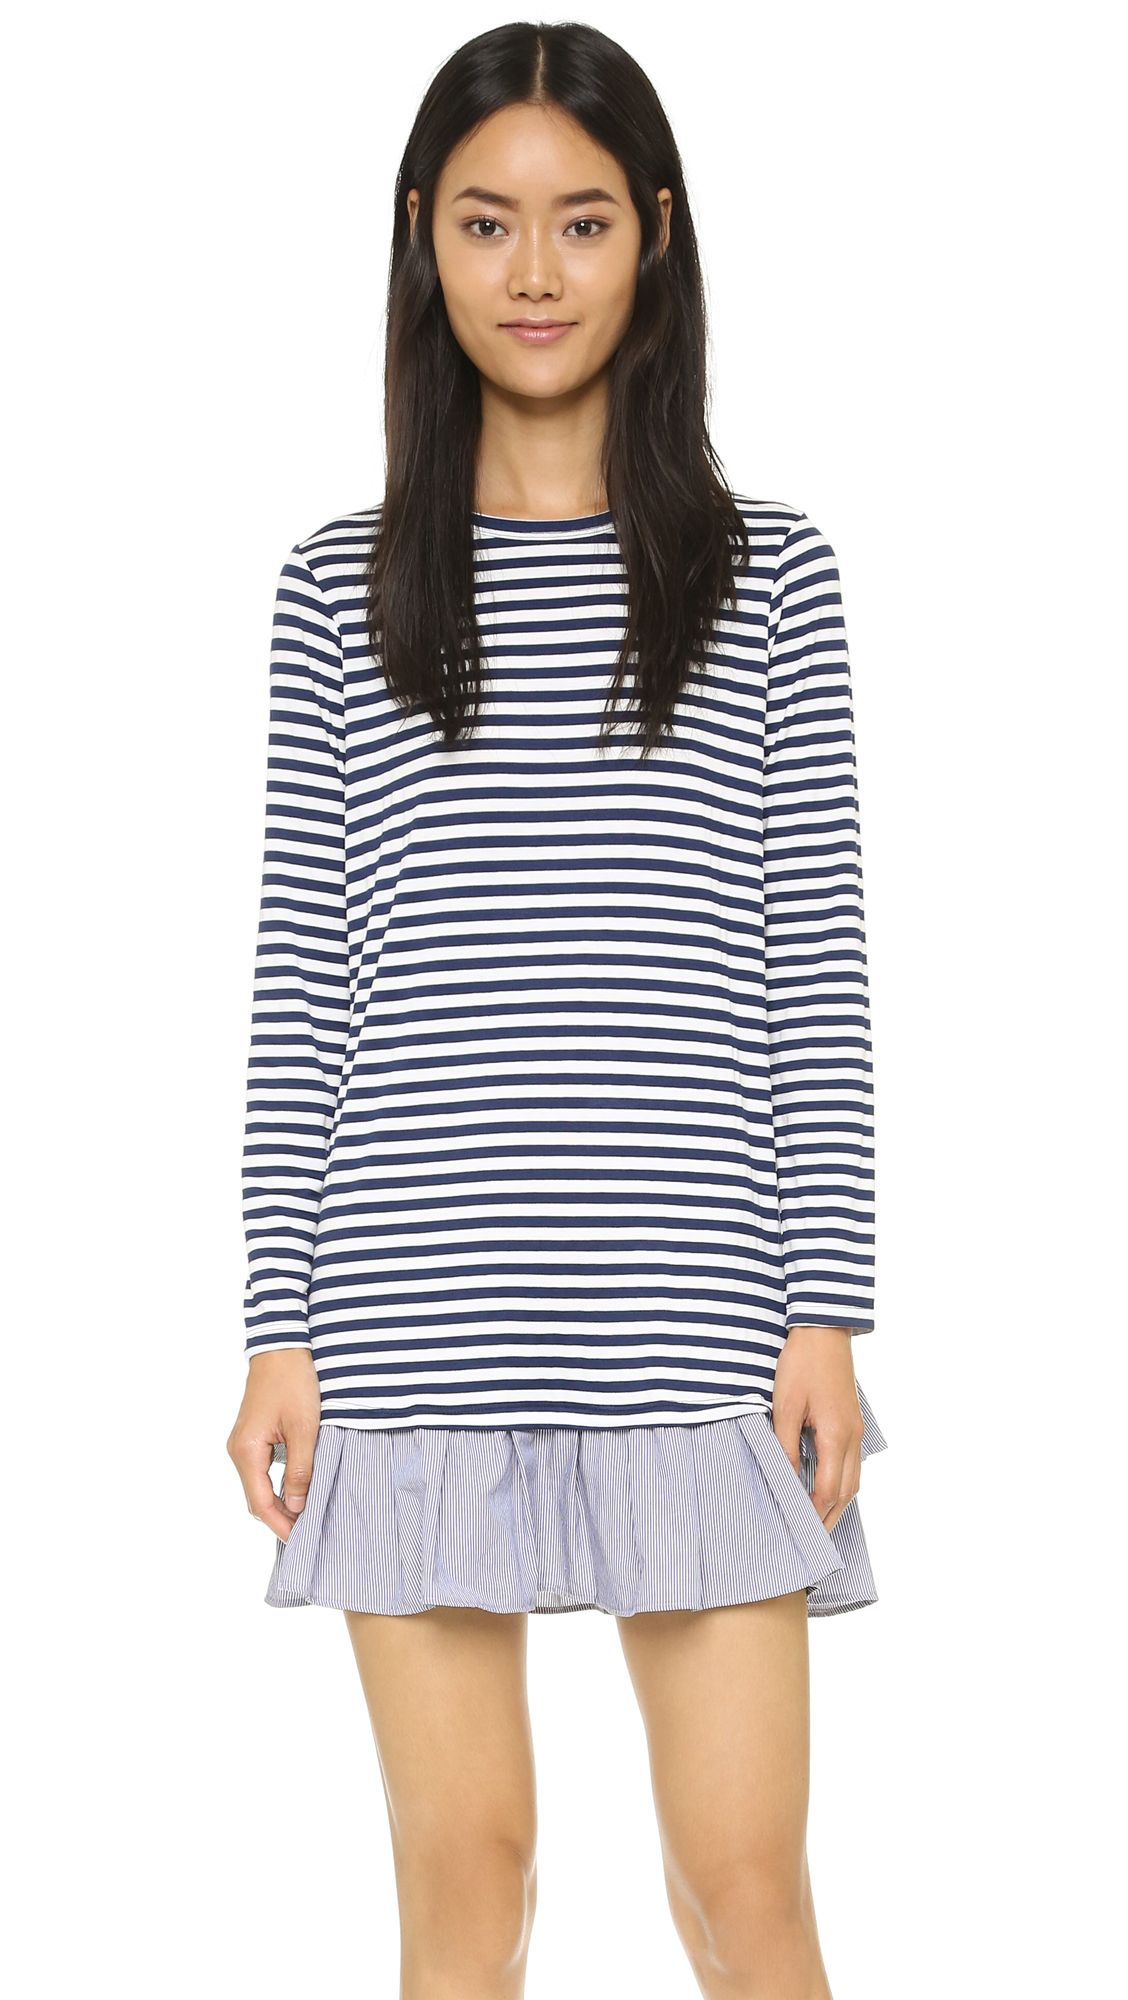 Clu long sleeve ruffle tee dress navy stripe shopbopcom saved